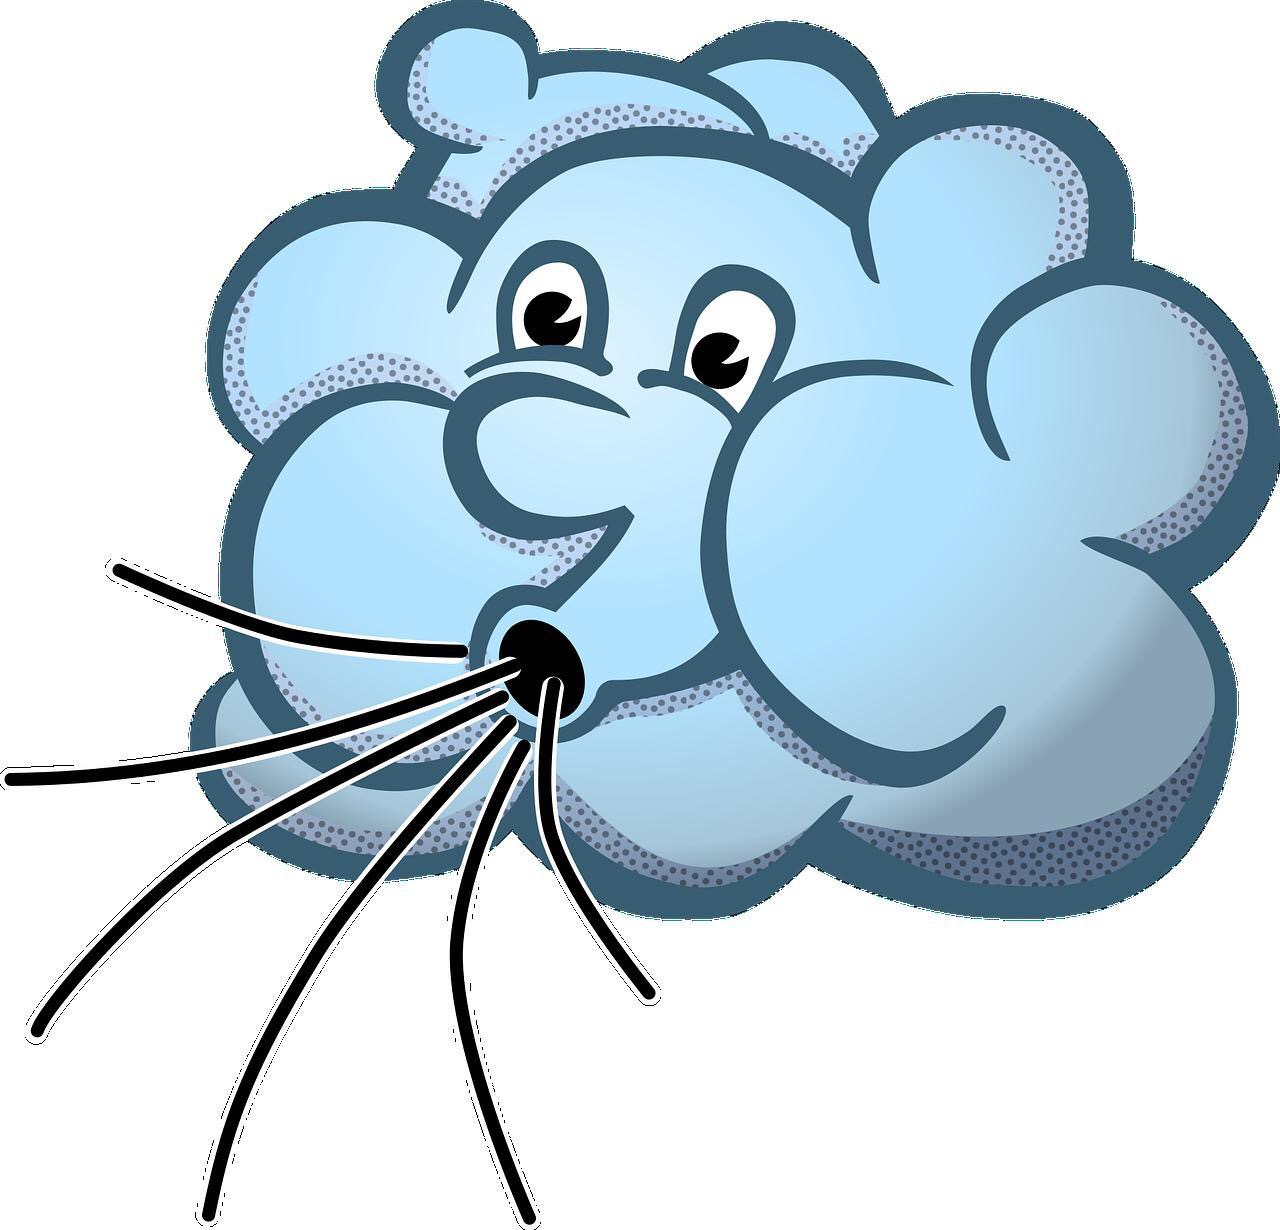 Windy Day Clip Art – Cliparts |Windy Day Clipart